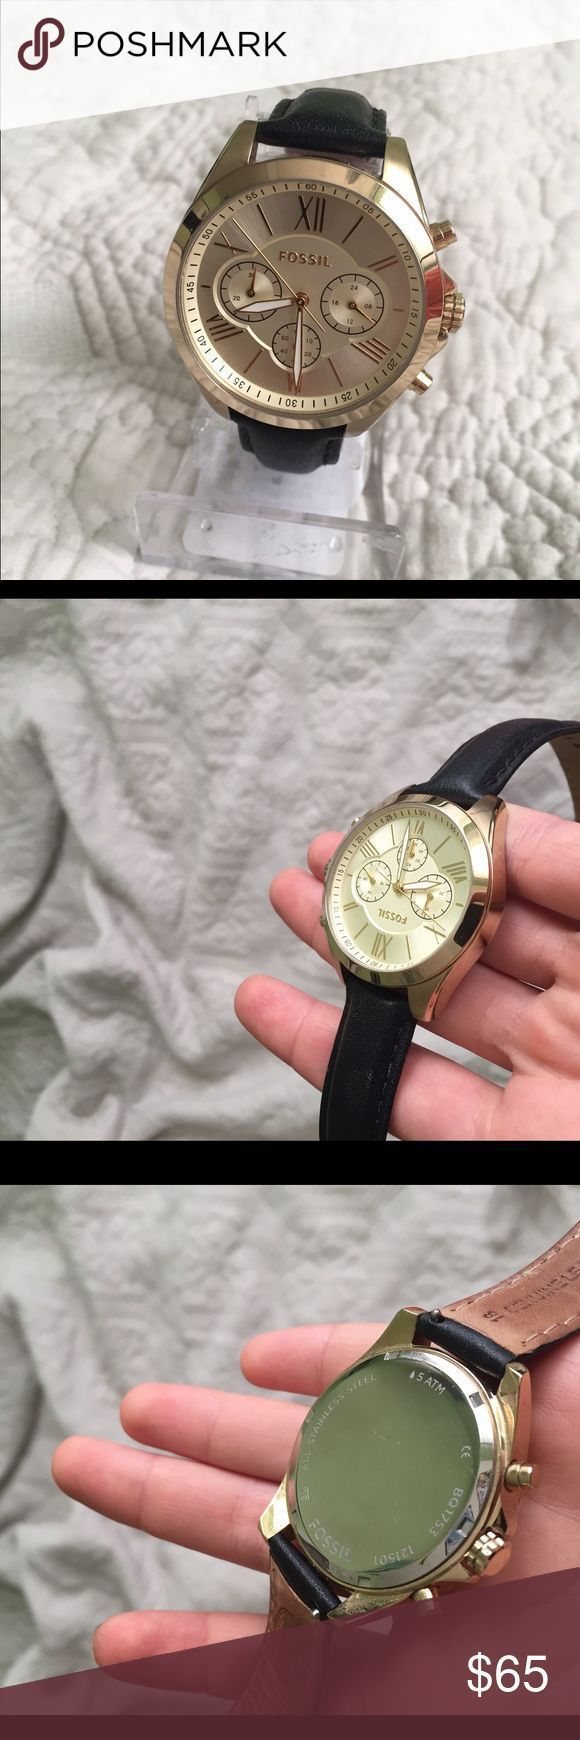 Montre pour femme : Fossil gold watch black leather band boyfriend Fossil women's watch gold and